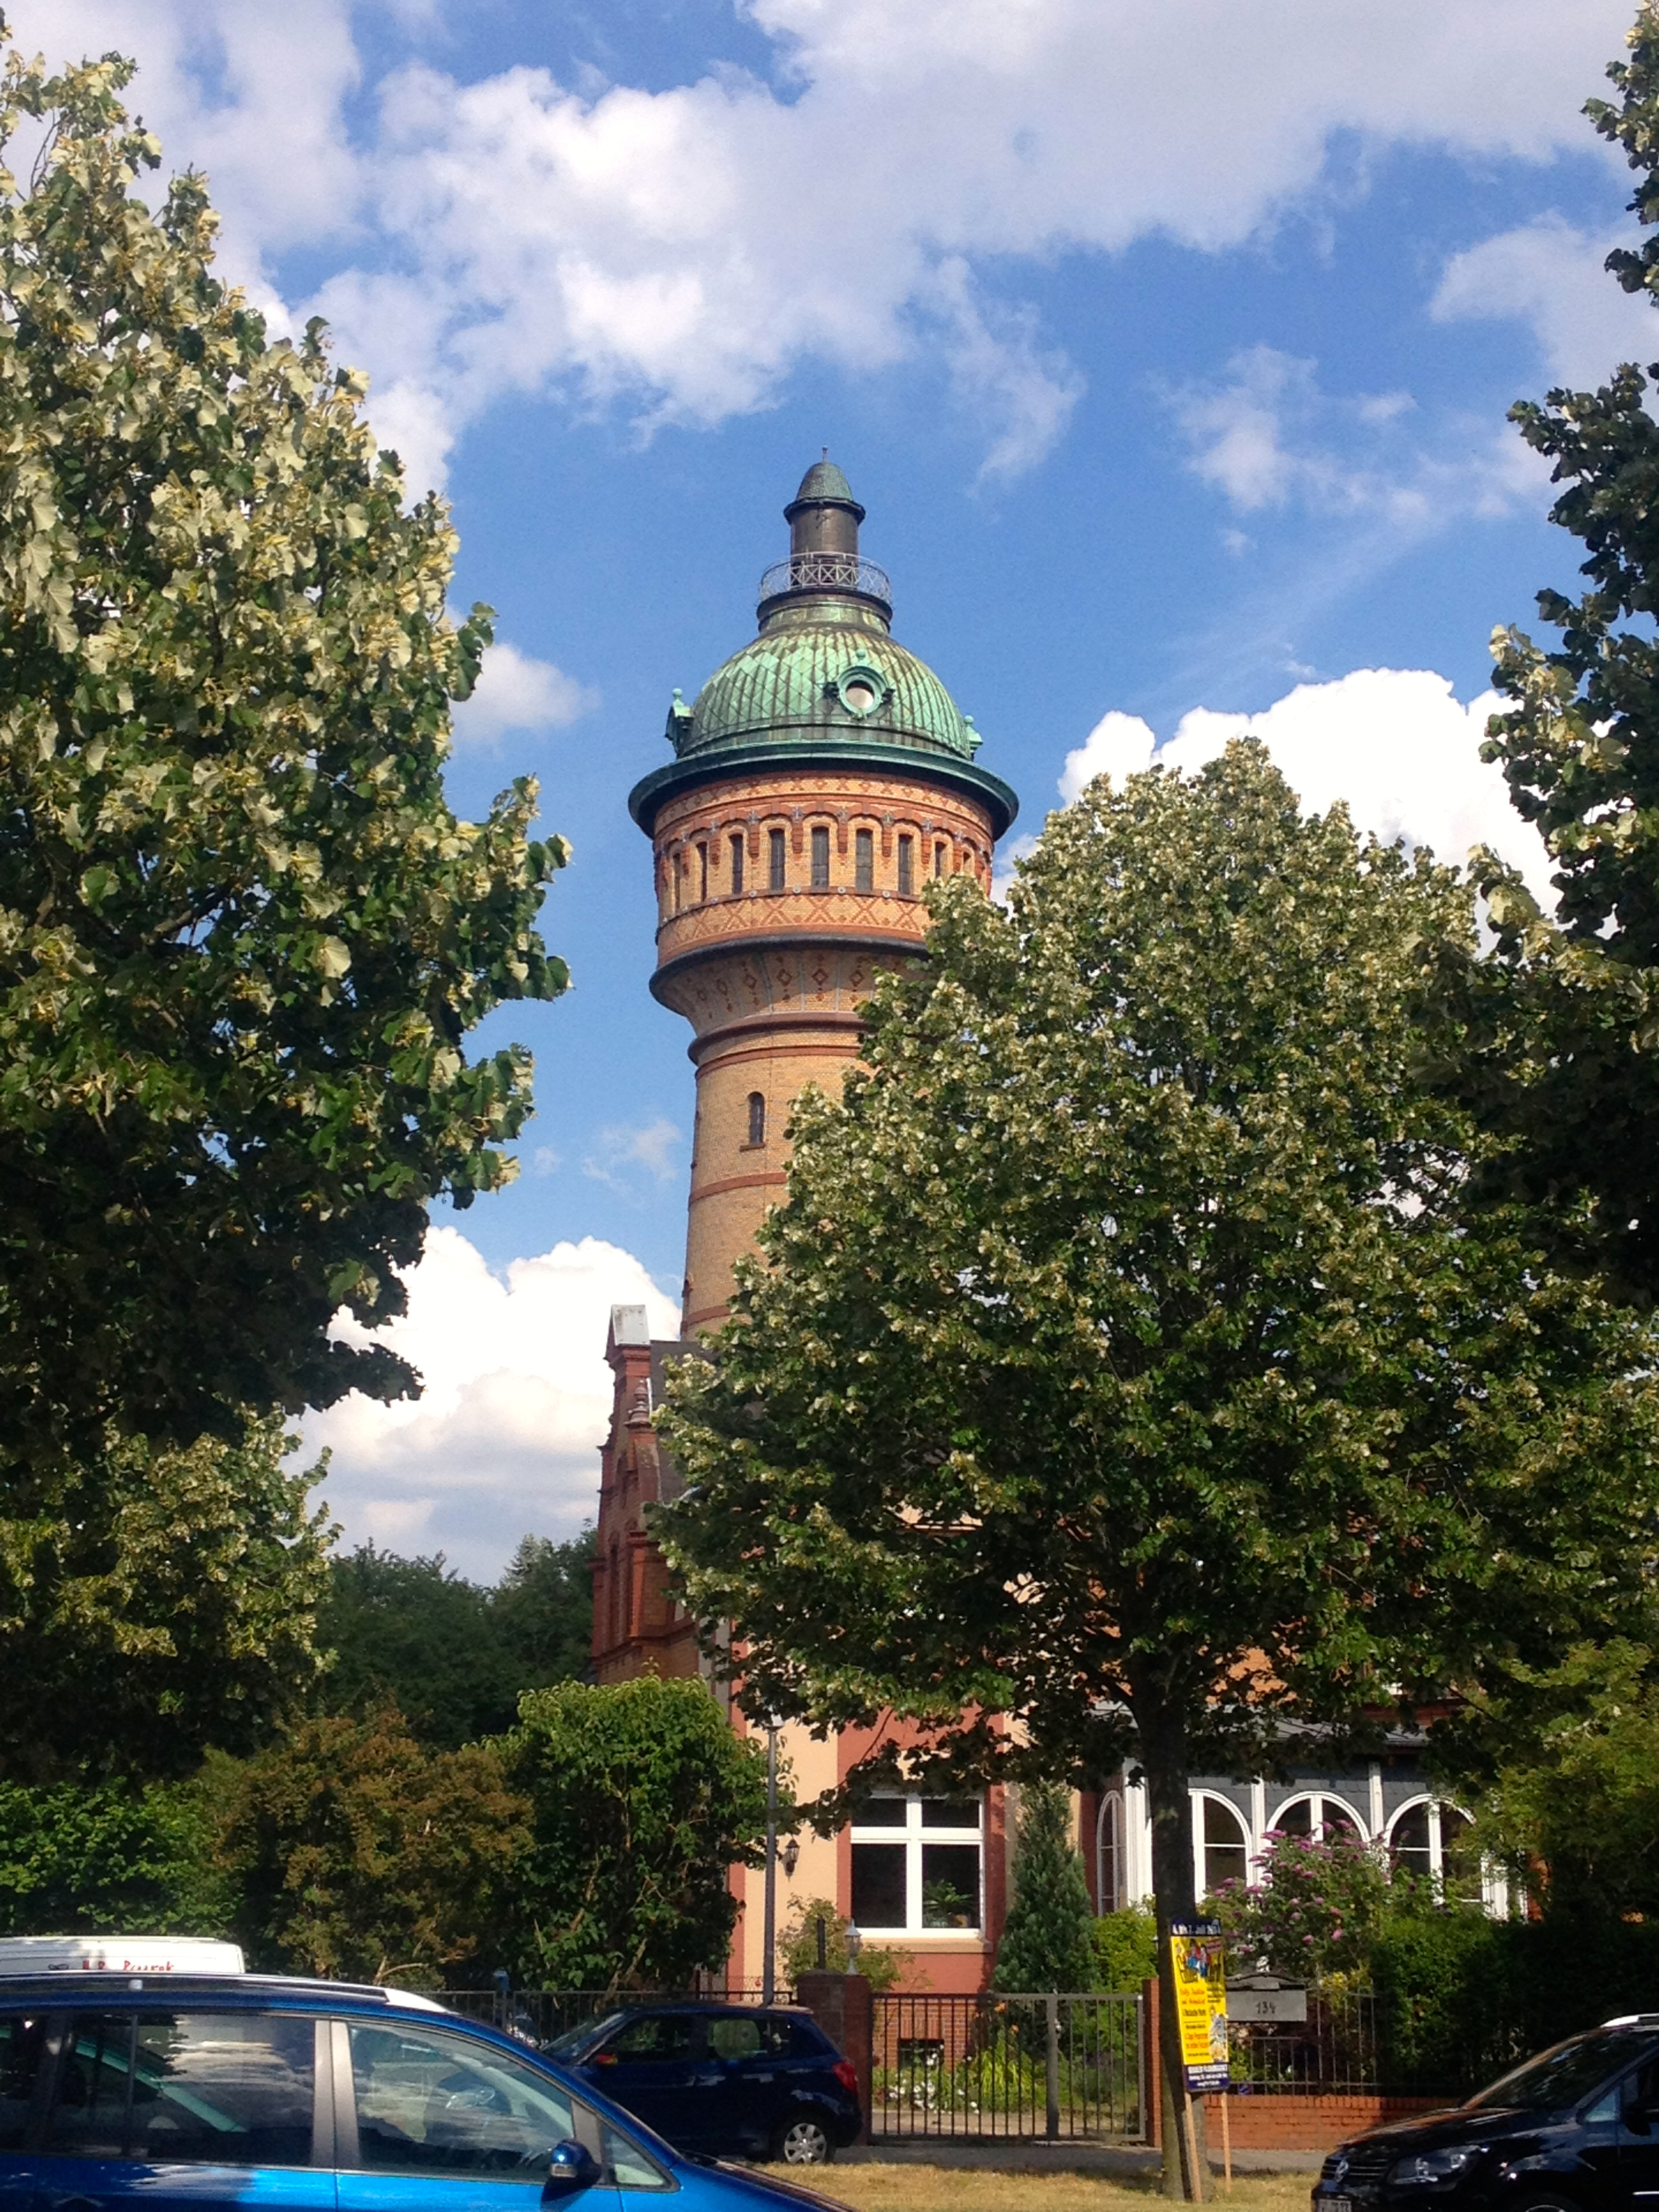 The old water tower across from my aunt's house